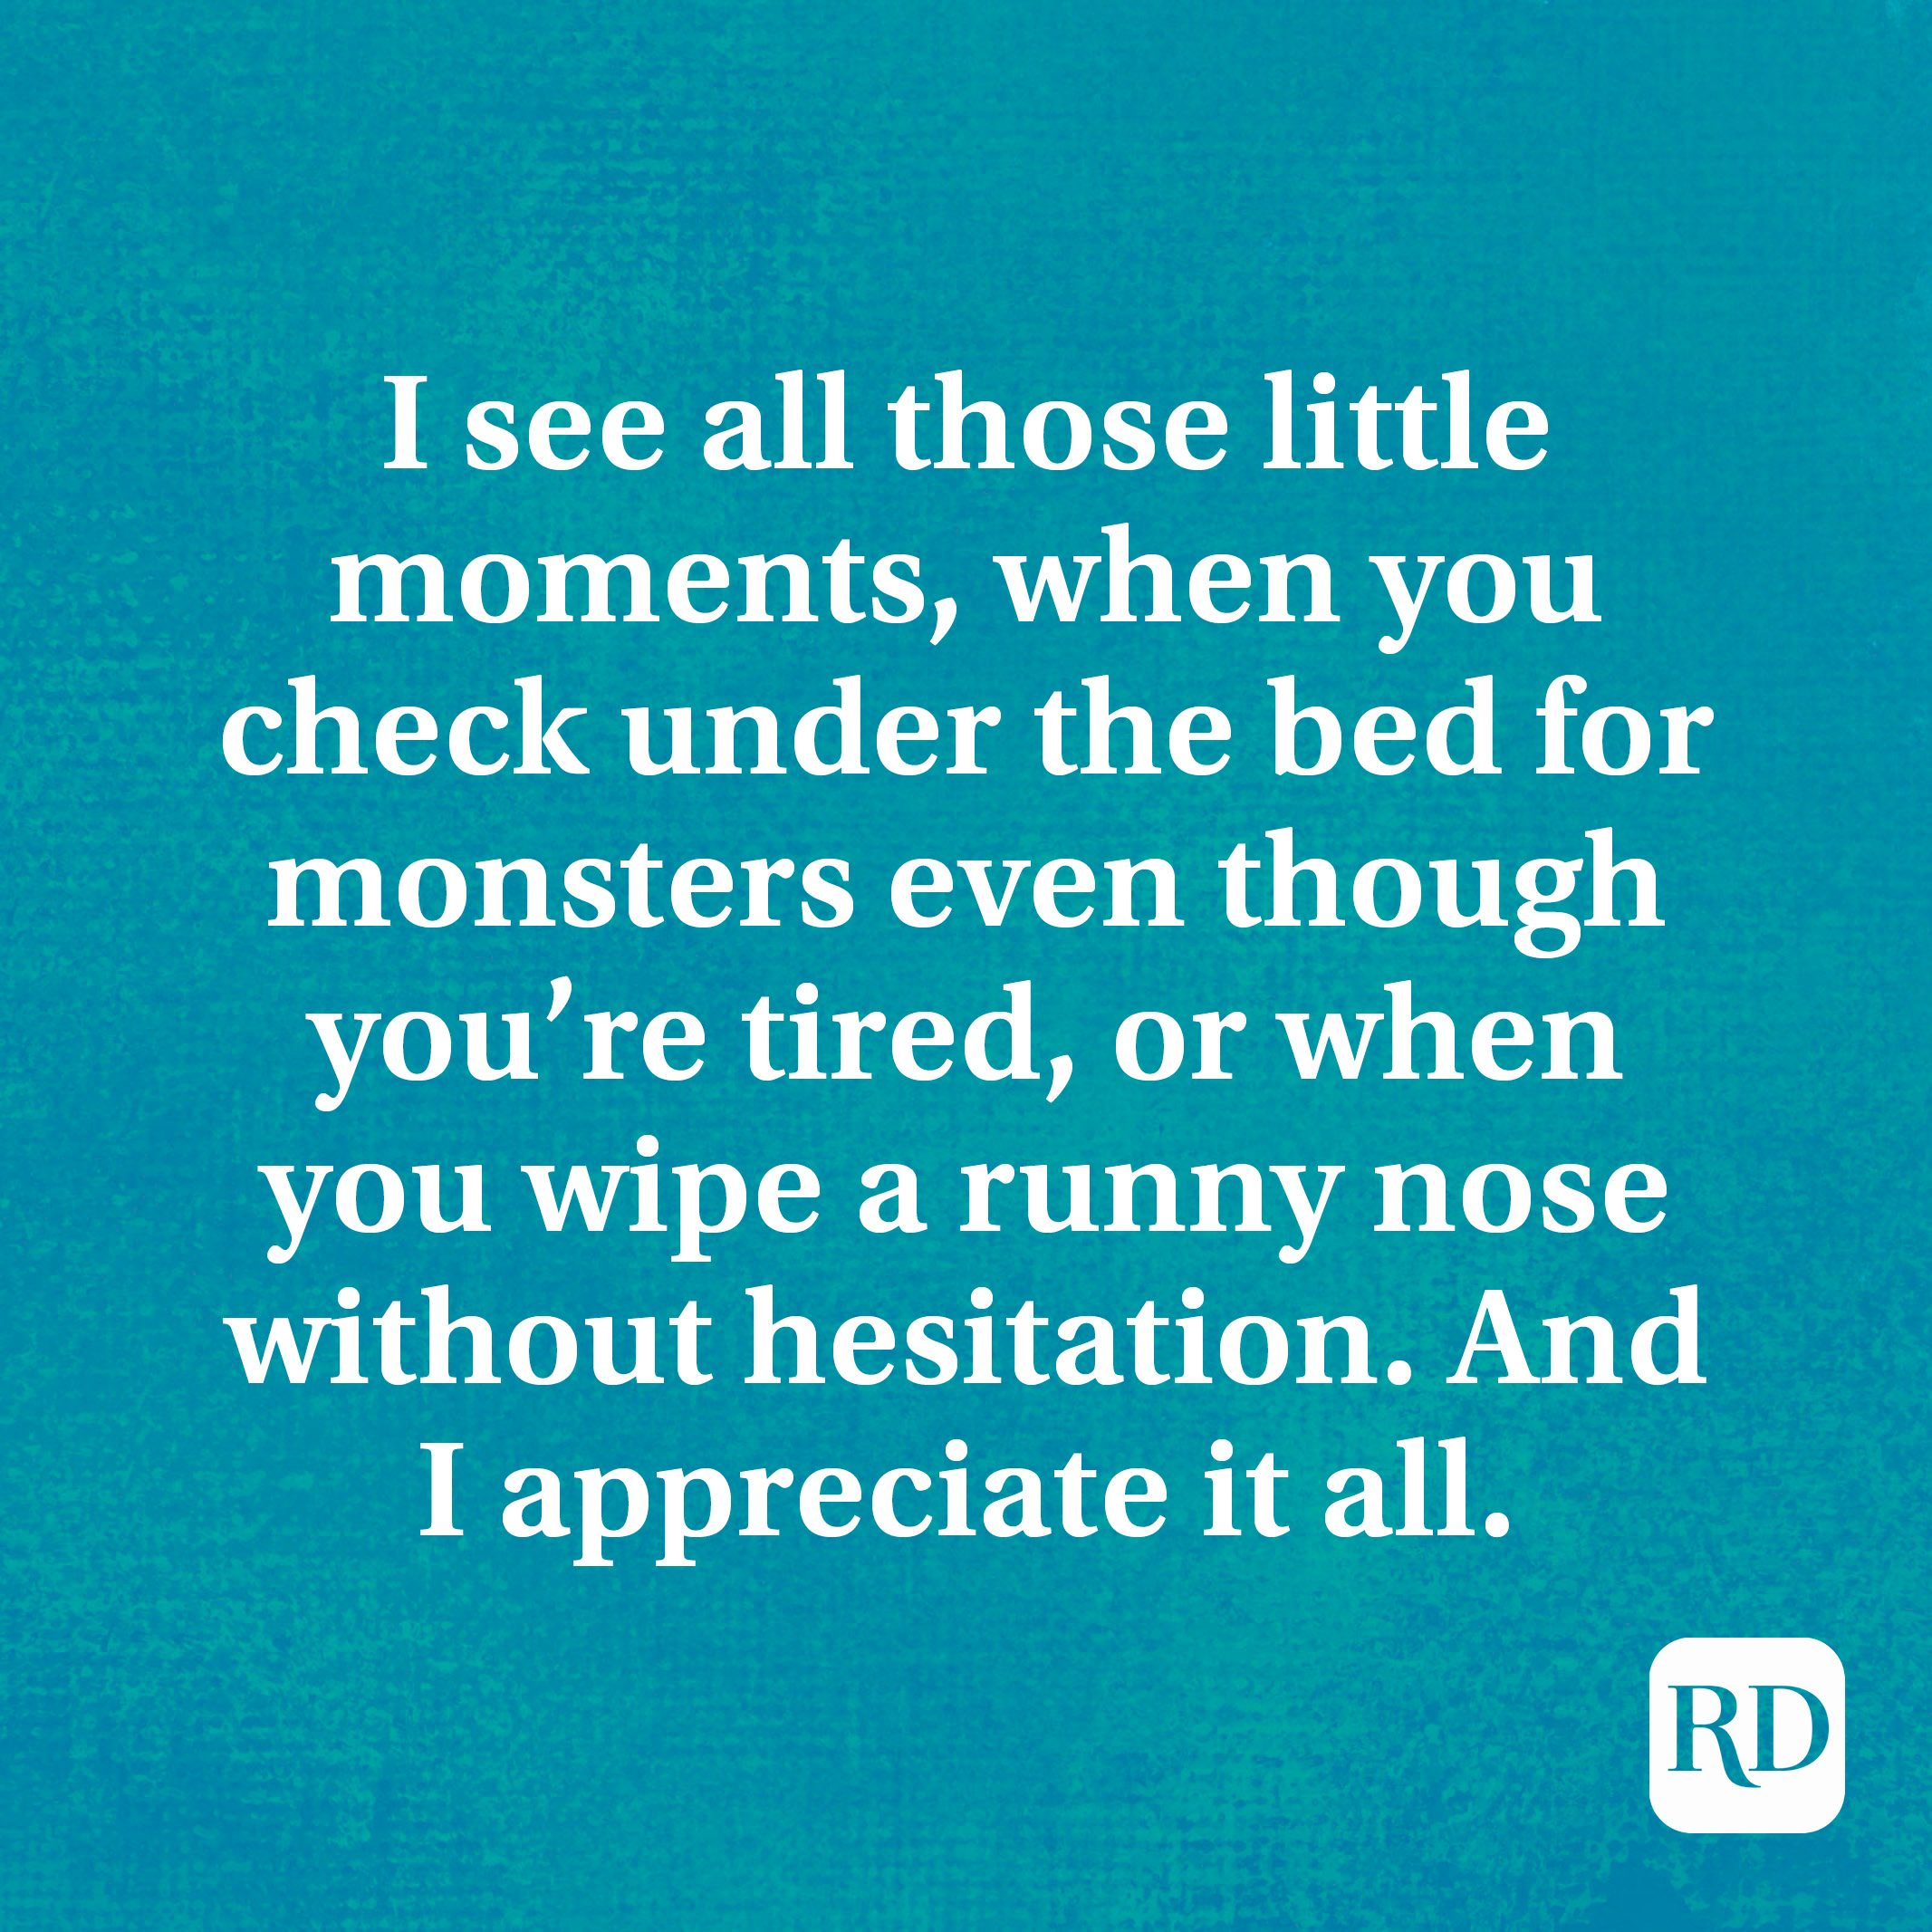 I see all those little moments, when you check under the bed for monsters even though you're tired, or when you wipe a runny nose without hesitation. And I appreciate it all.